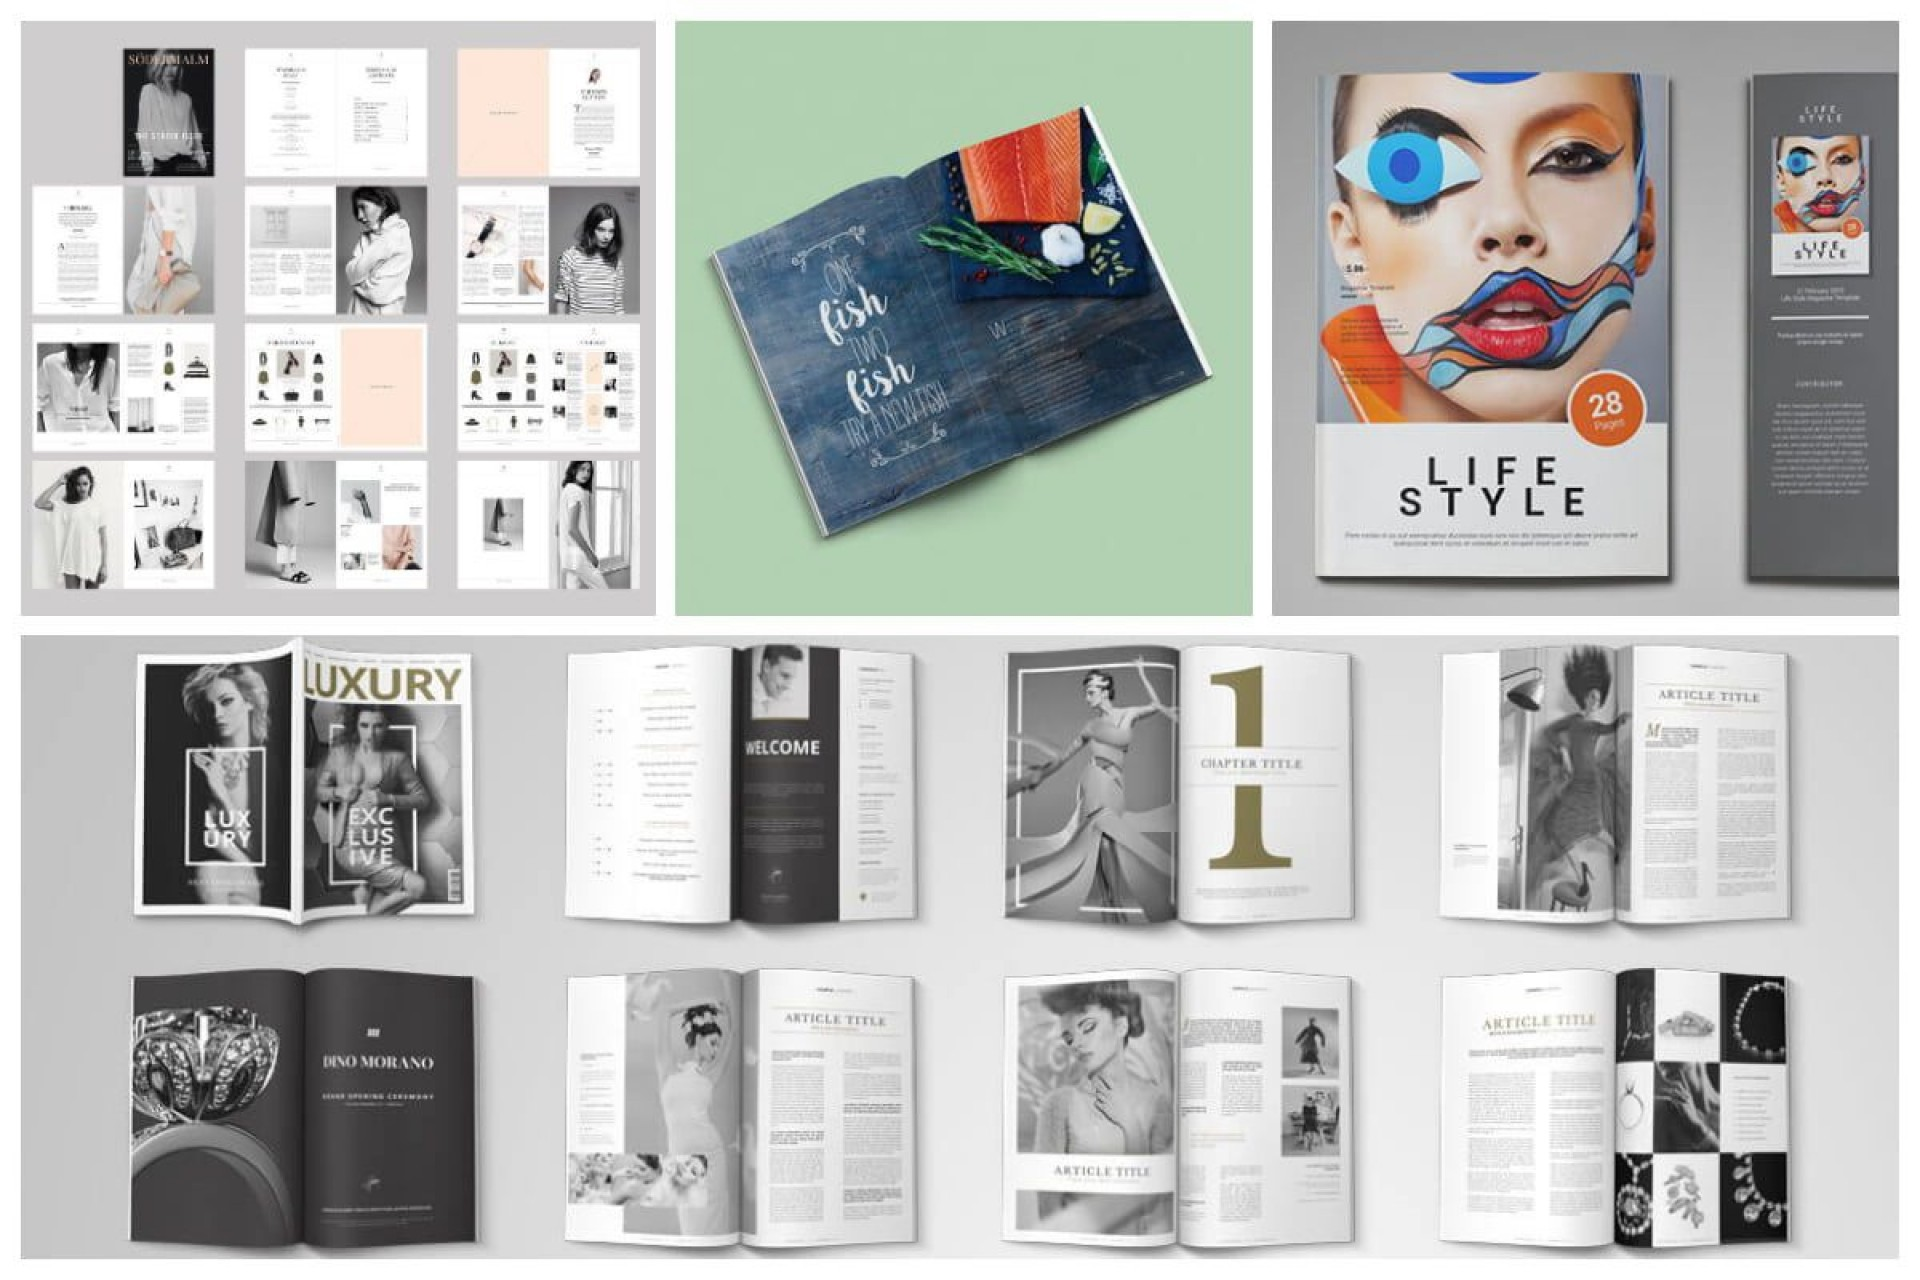 010 Marvelou Photoshop Magazine Layout Template Free Download Highest Quality 1920